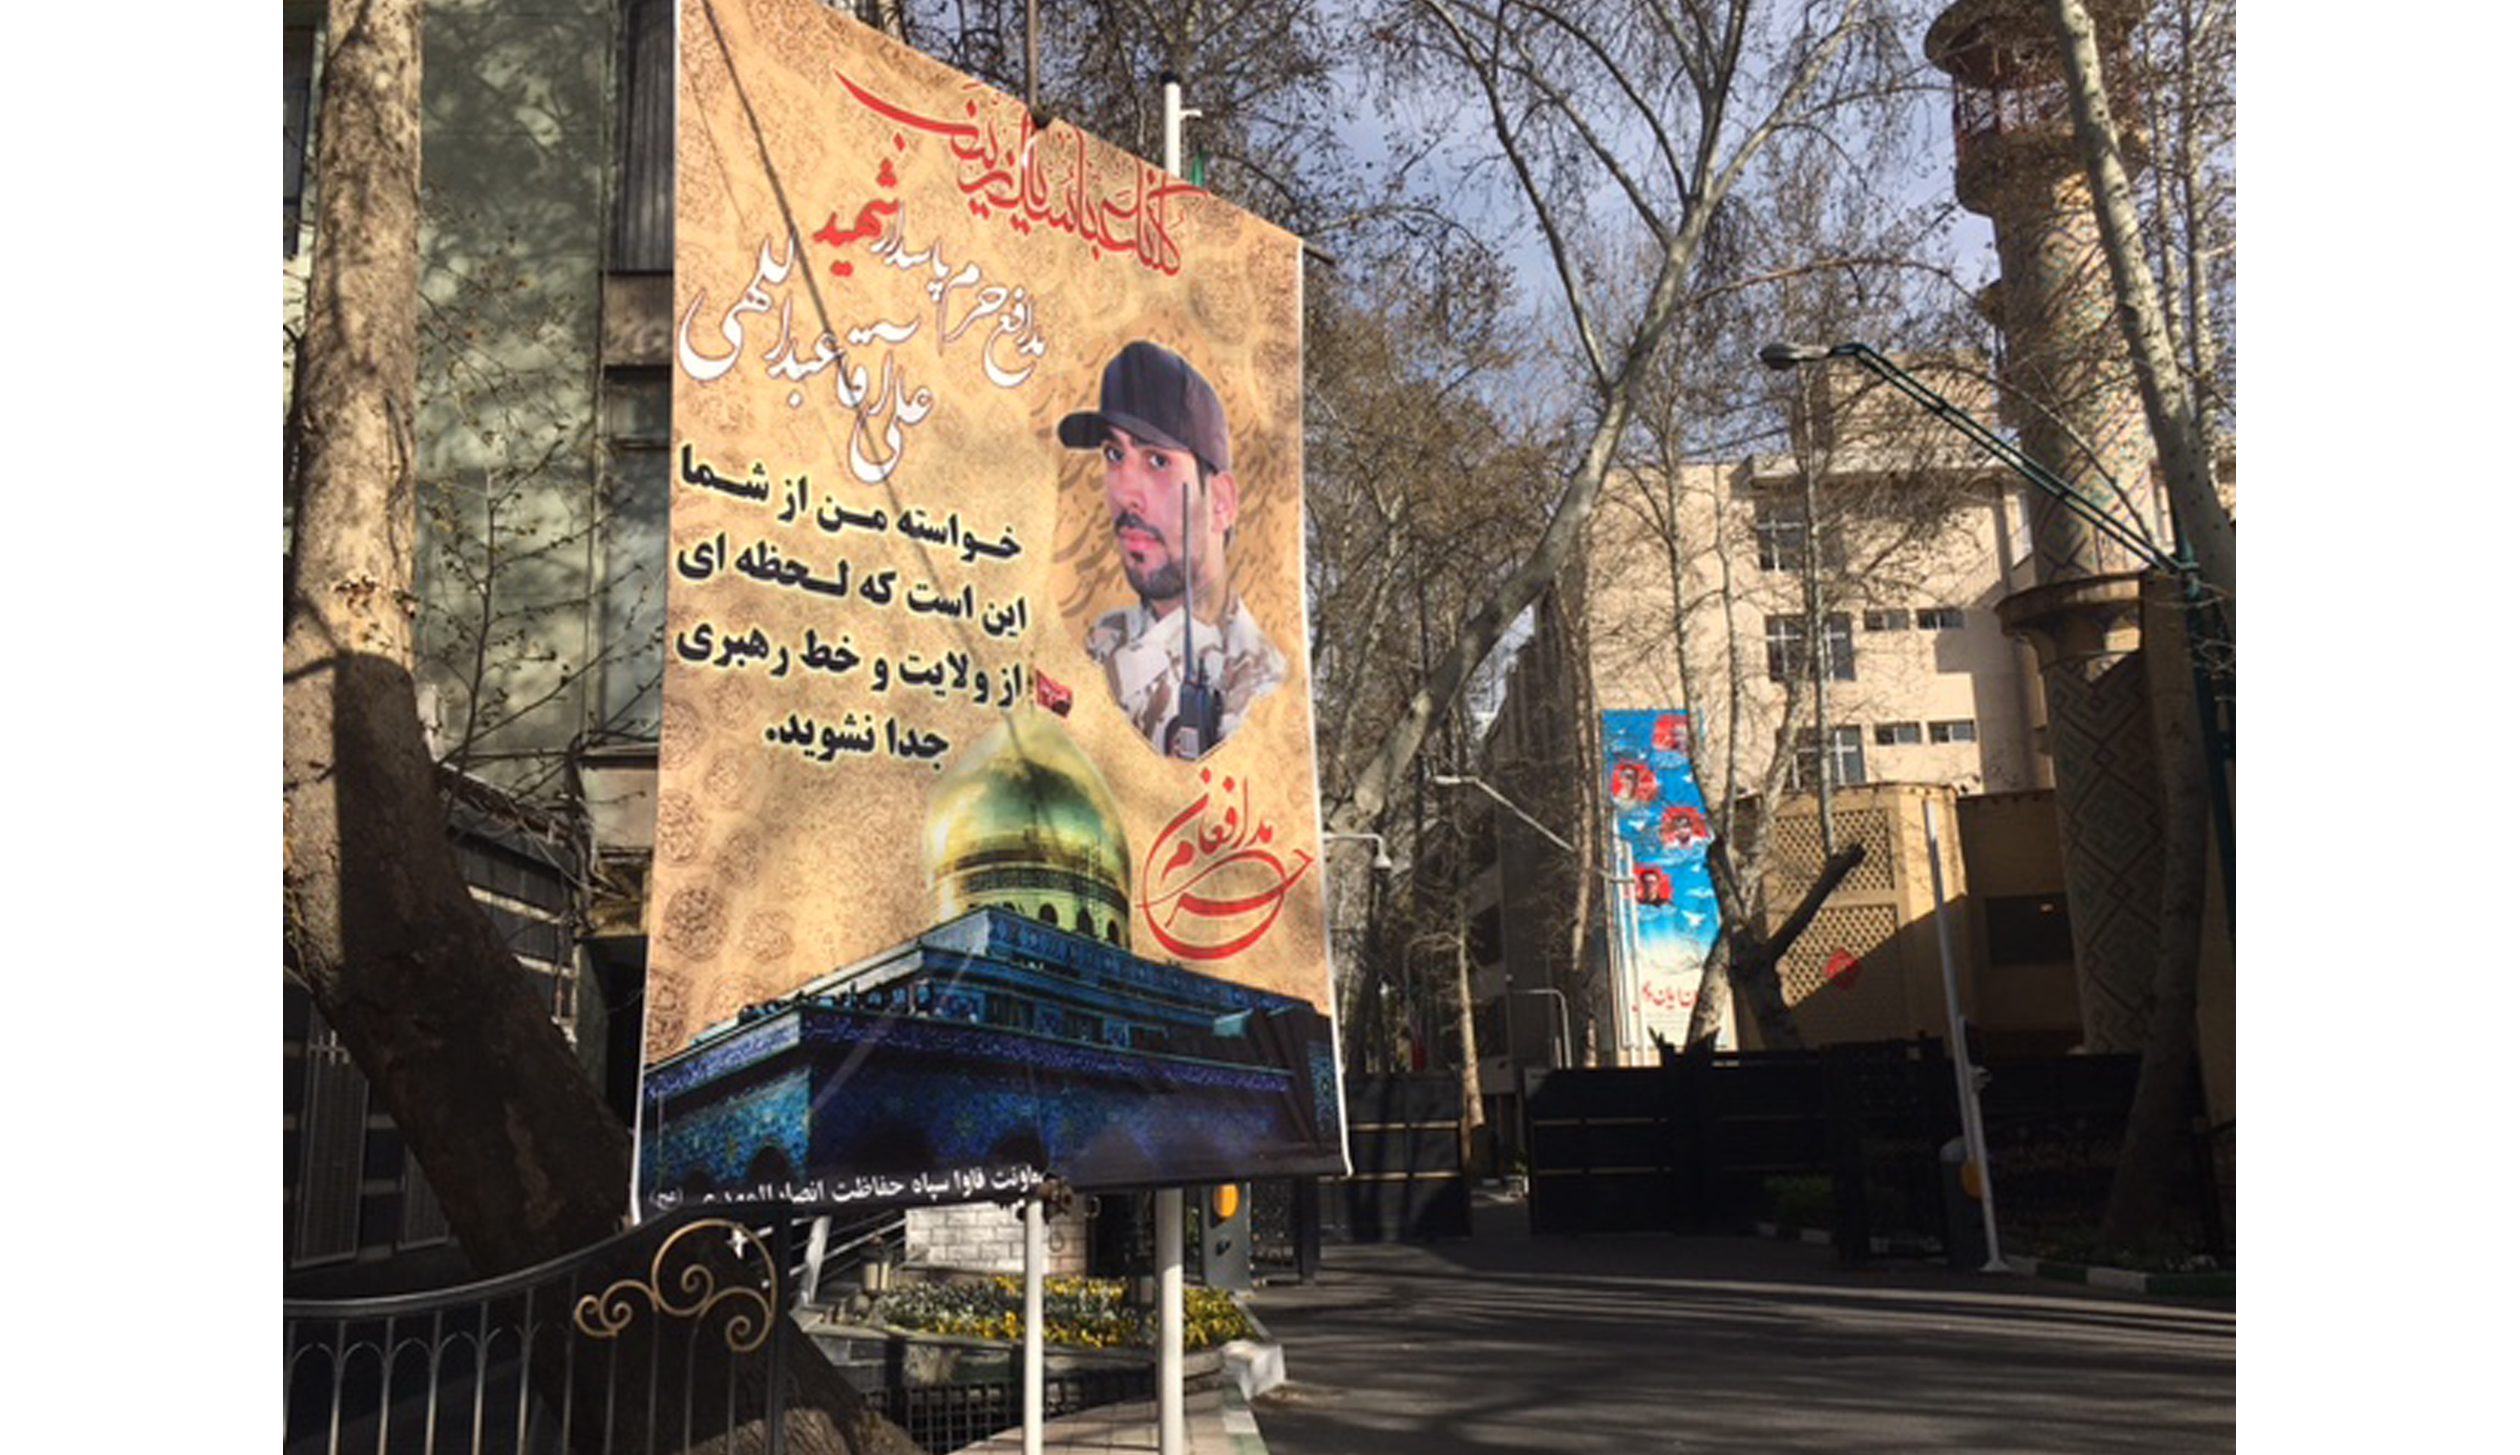 A poster near President Rouhani's office honors a young Revolutionary Guardsman killed recently in the Syrian conflict.